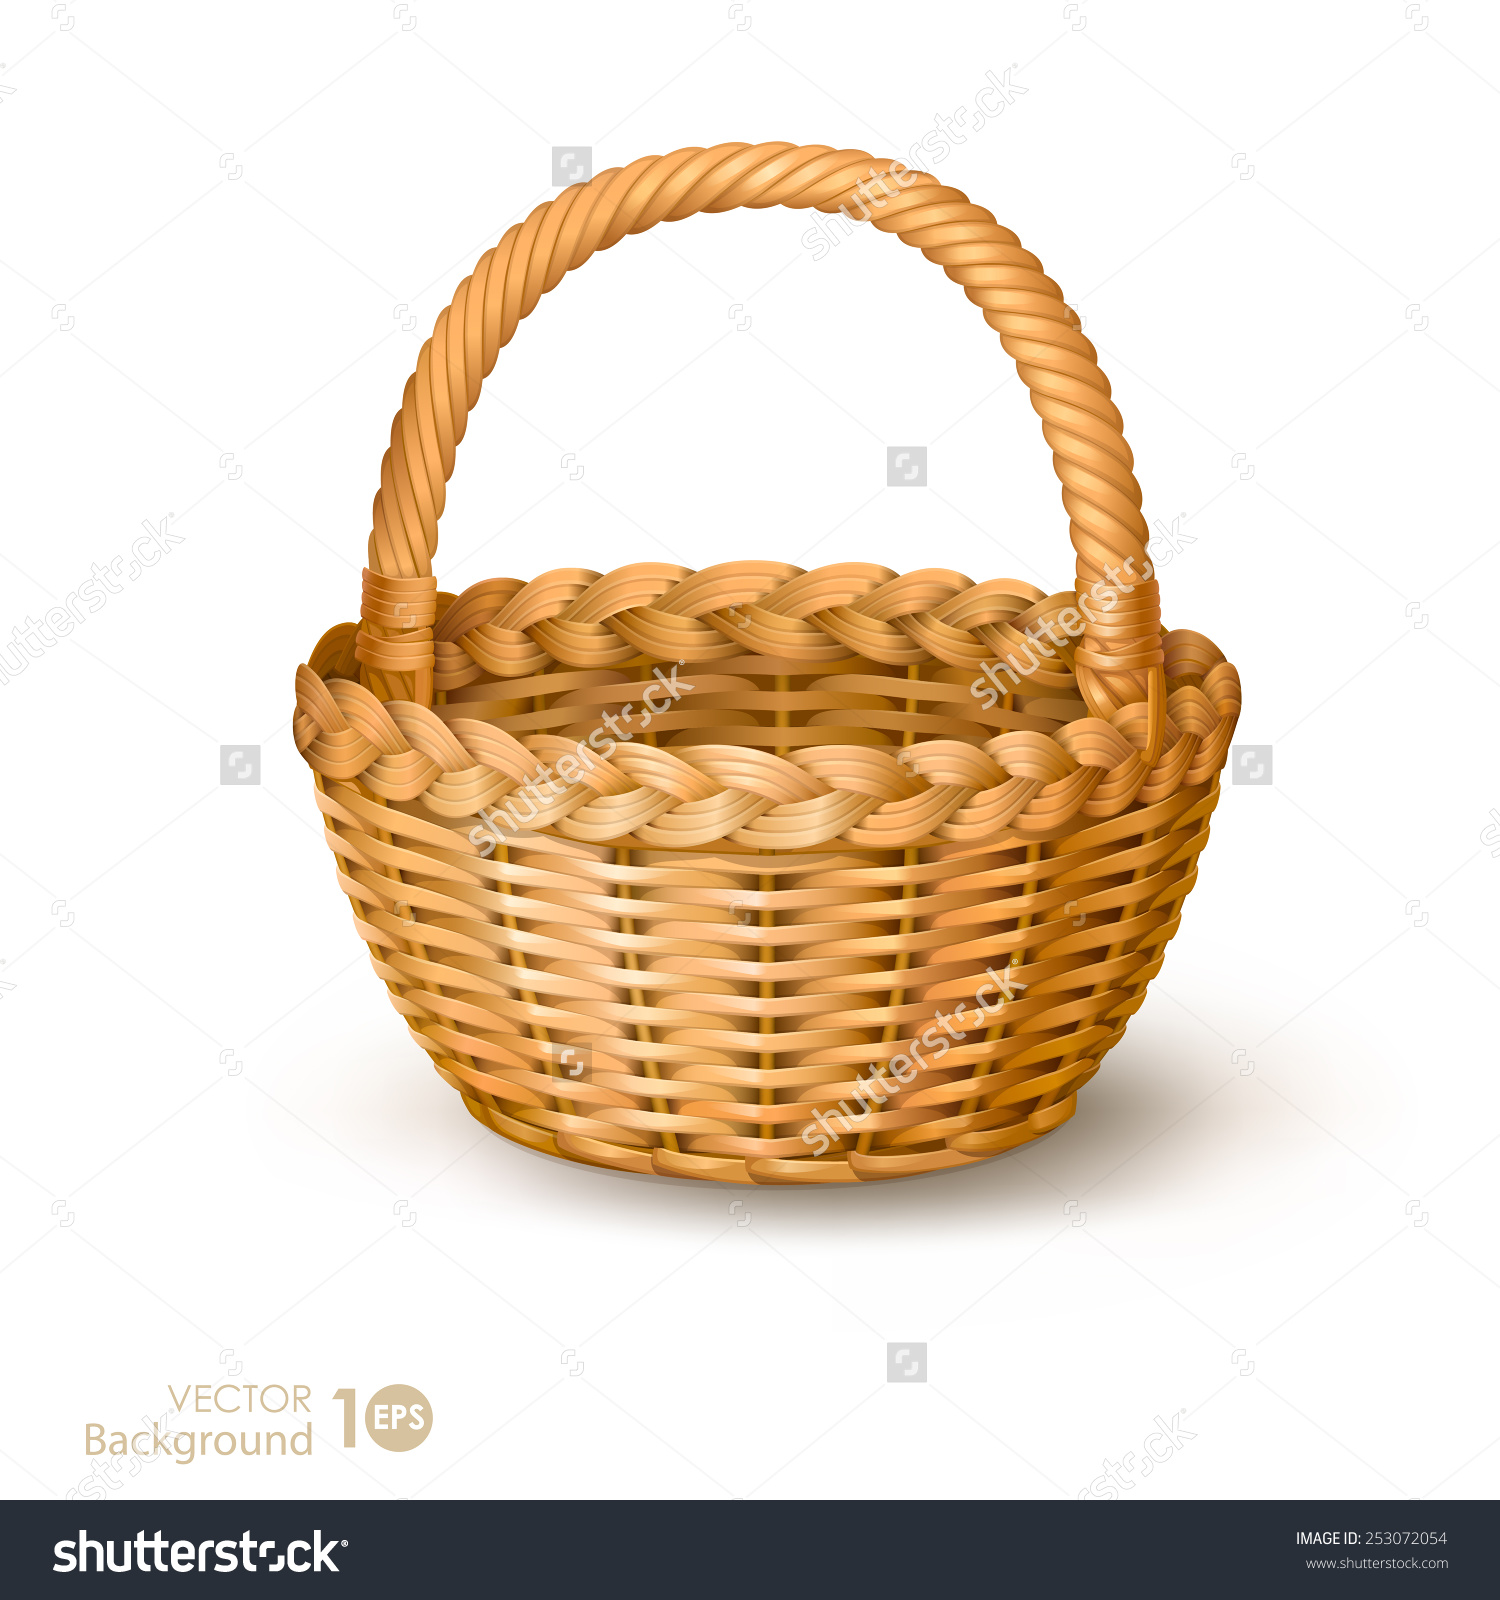 Wicker Basket Vector Stock Vector 253072054.